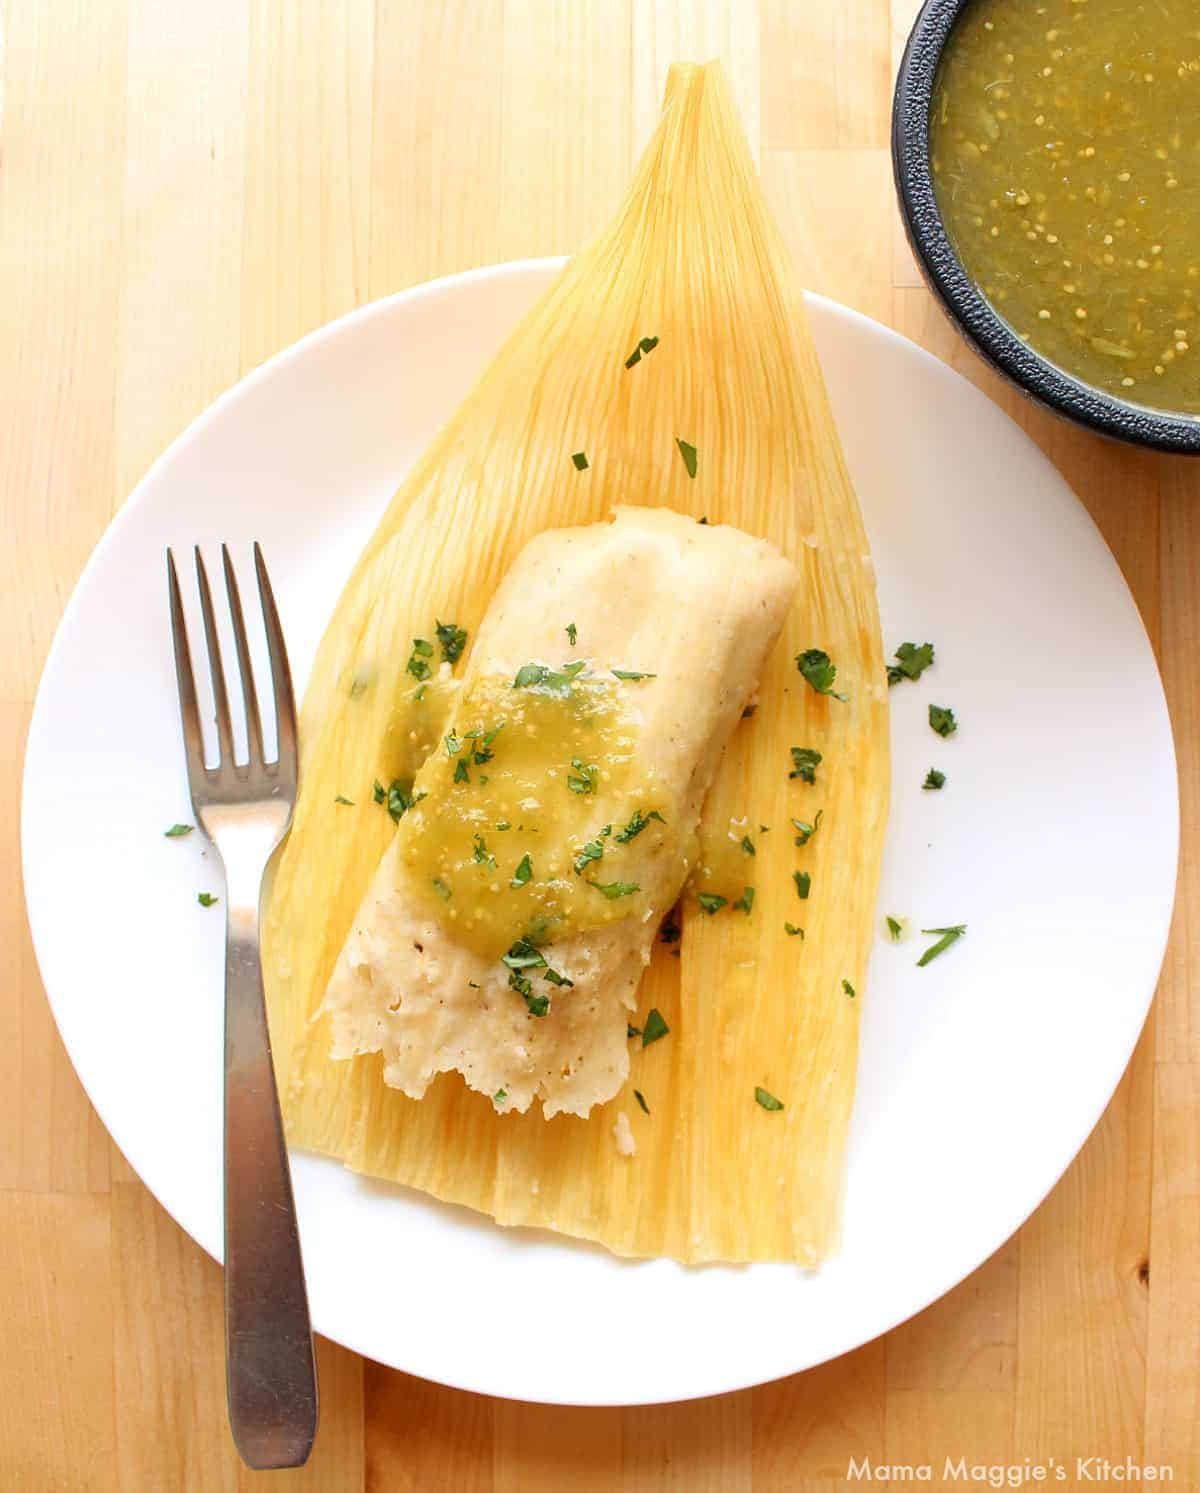 A tamal on top of a corn husk drizzled with green salsa verde and chopped cilantro.